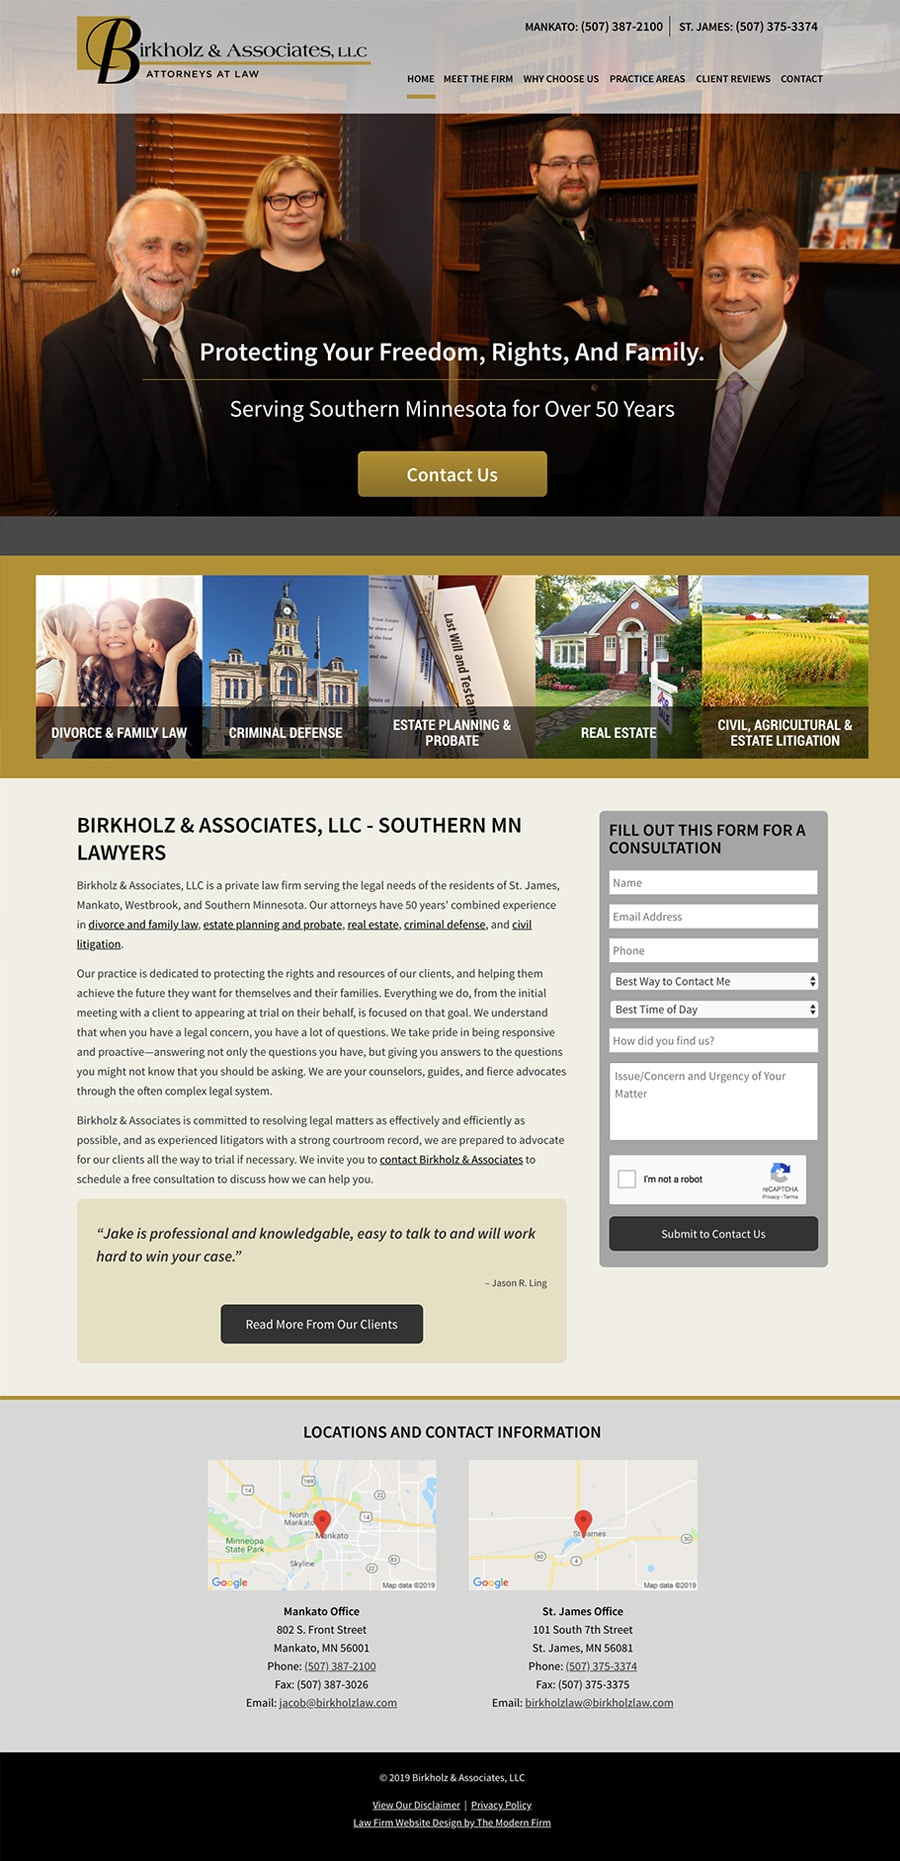 Law Firm Website Design for Birkholz & Associates, LLC